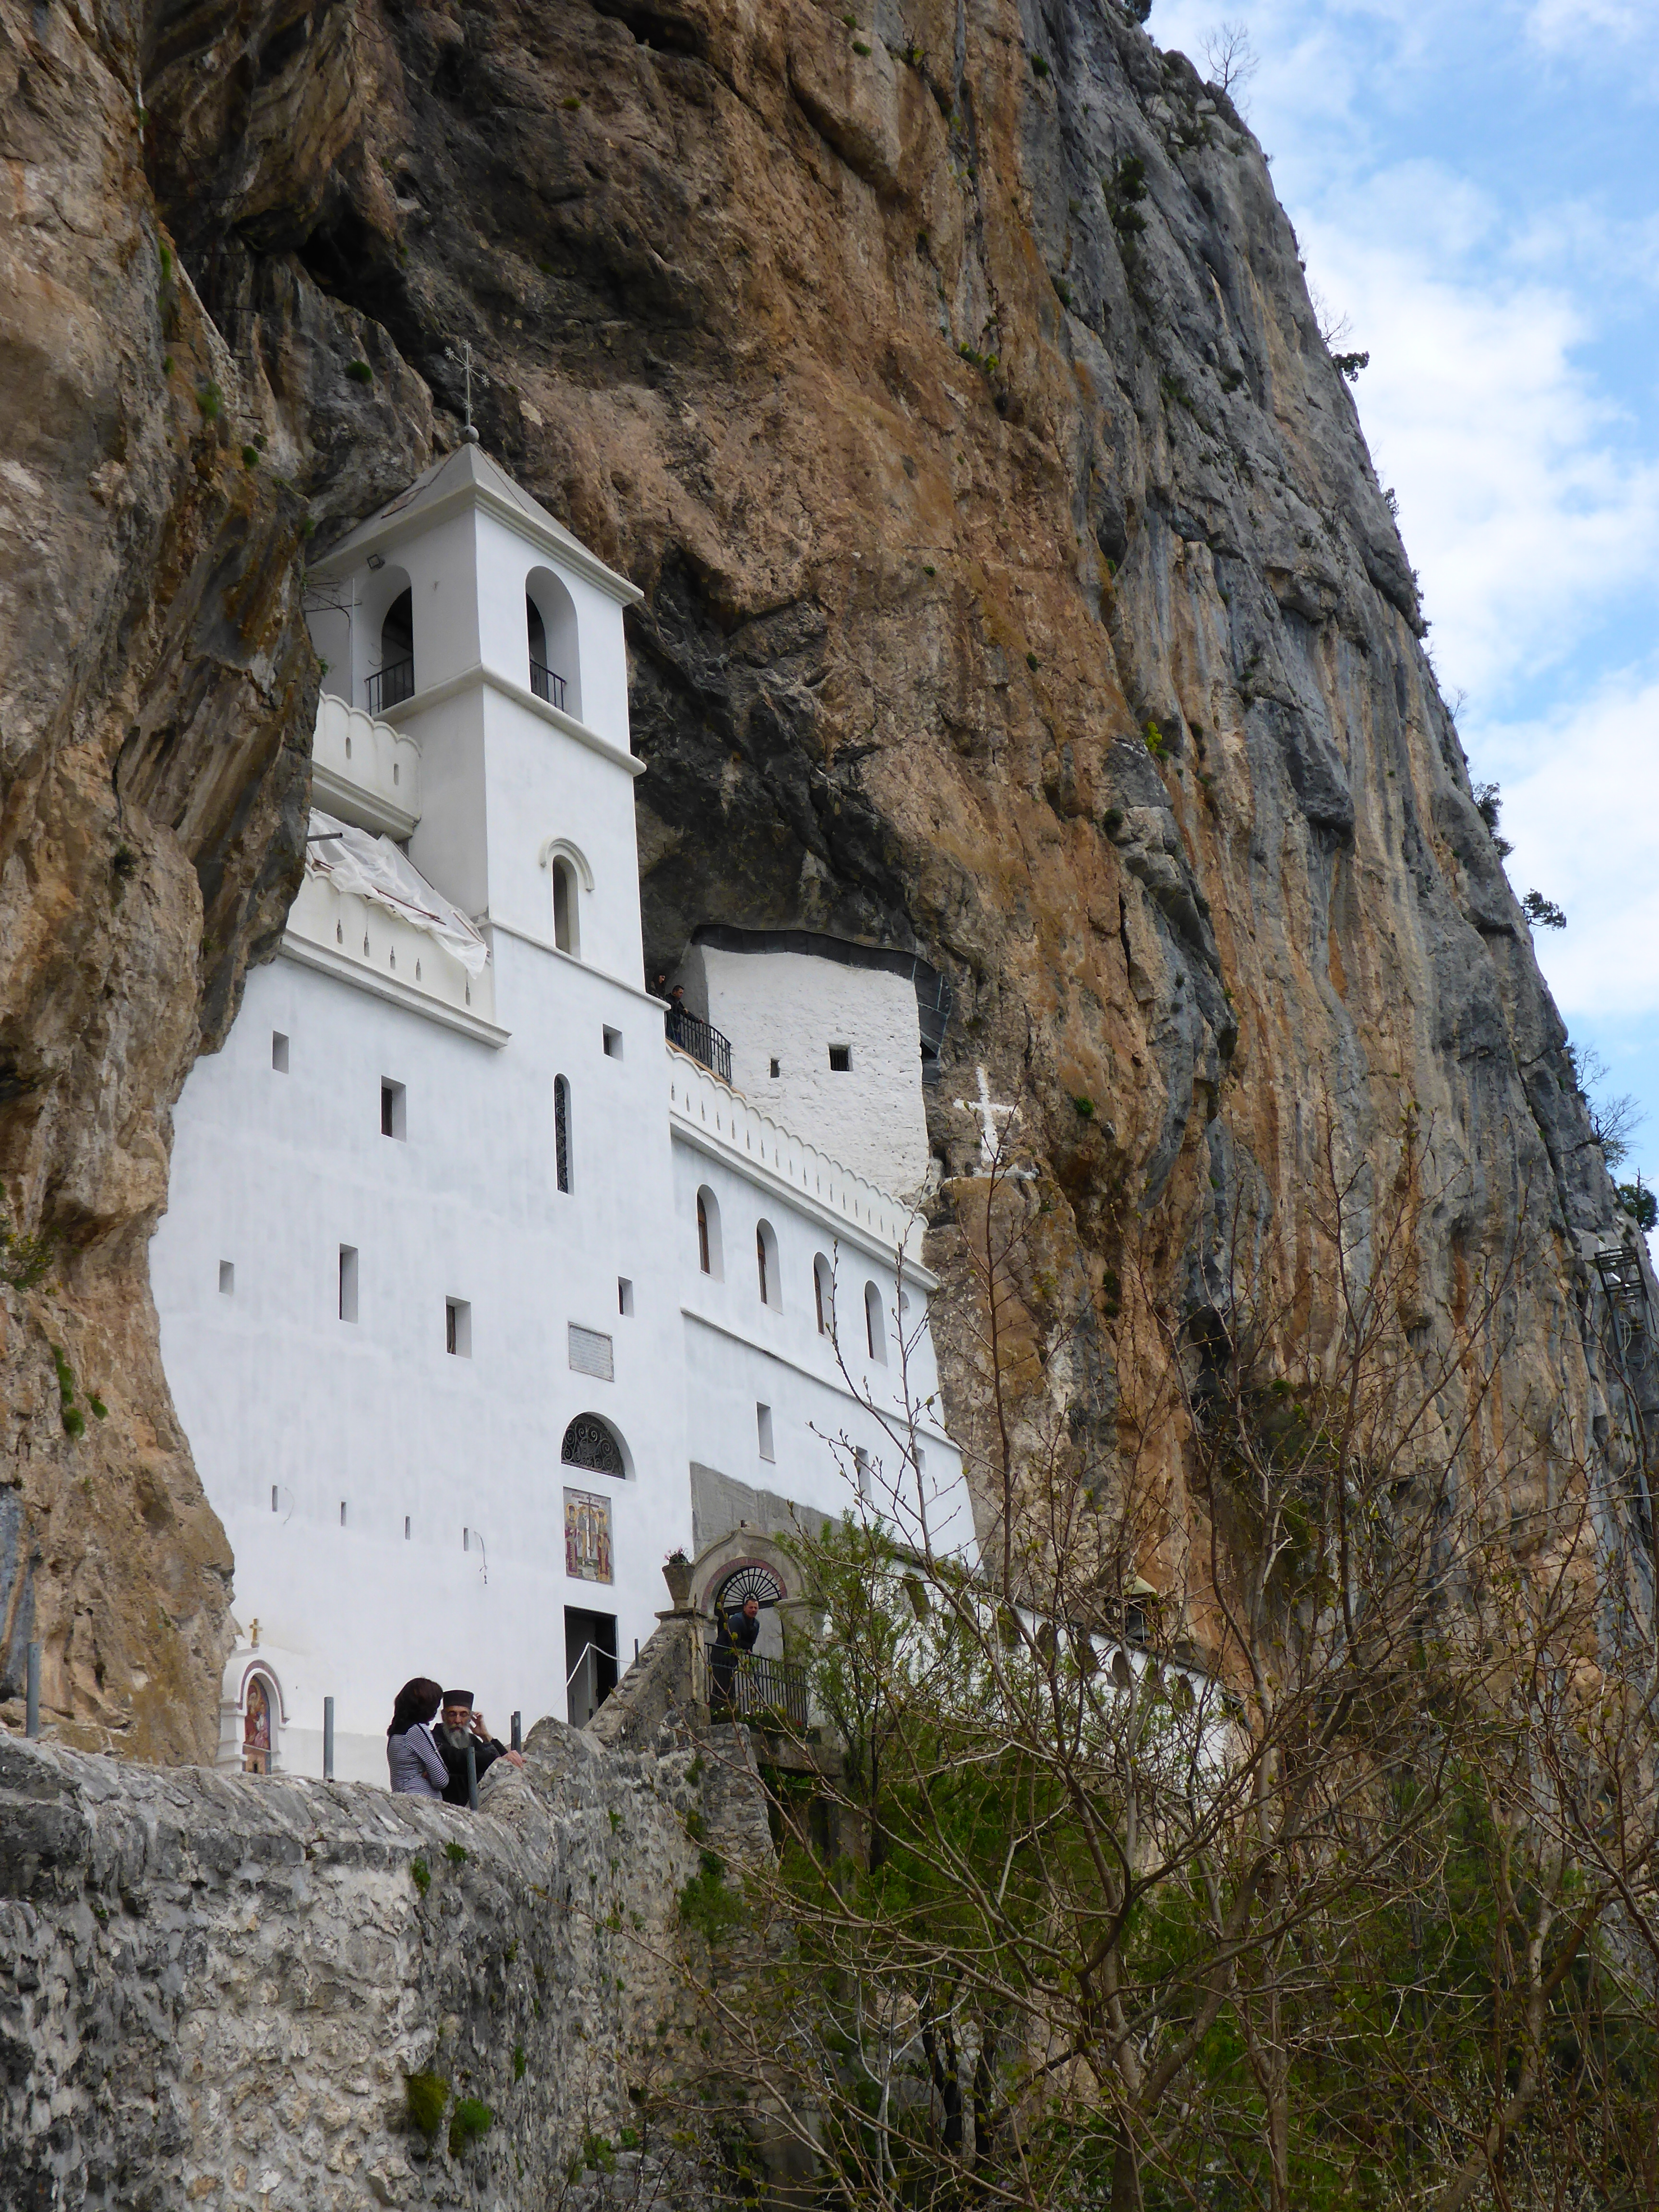 Monastery wallpapers high quality download free for Building a house in the mountains